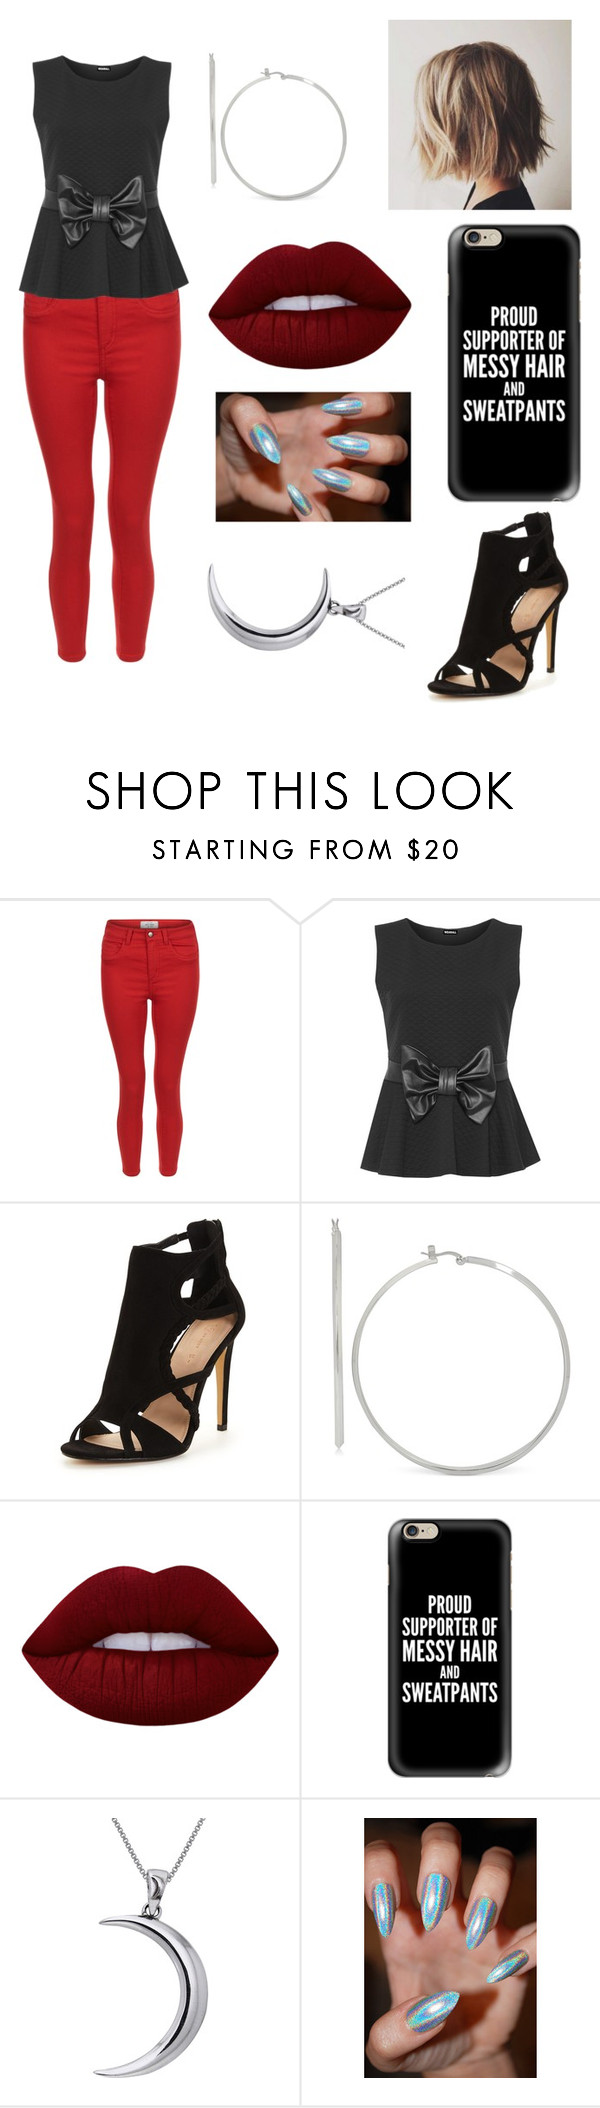 """Untitled #83"" by malyaia ❤ liked on Polyvore featuring New Look, WearAll, Lime Crime, Casetify and Carolina Glamour Collection"